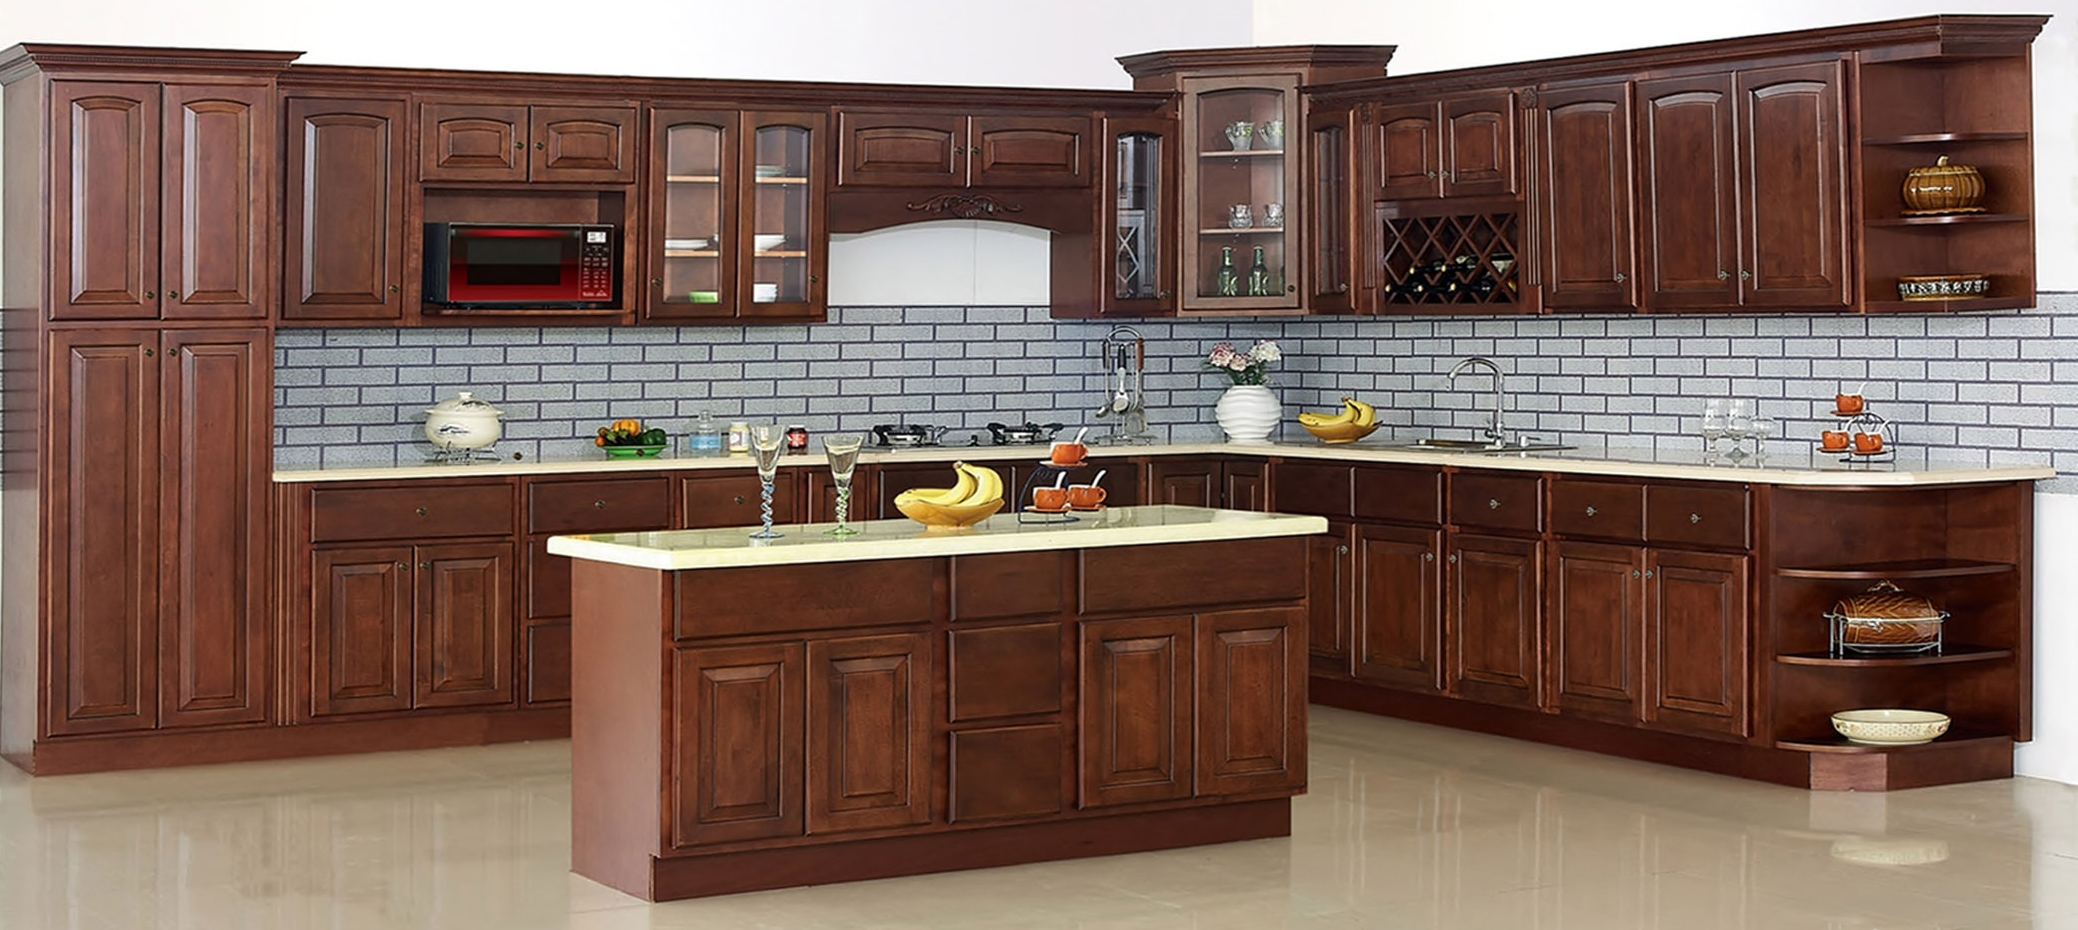 10 X 10 Kitchens The Best Quality Home Design